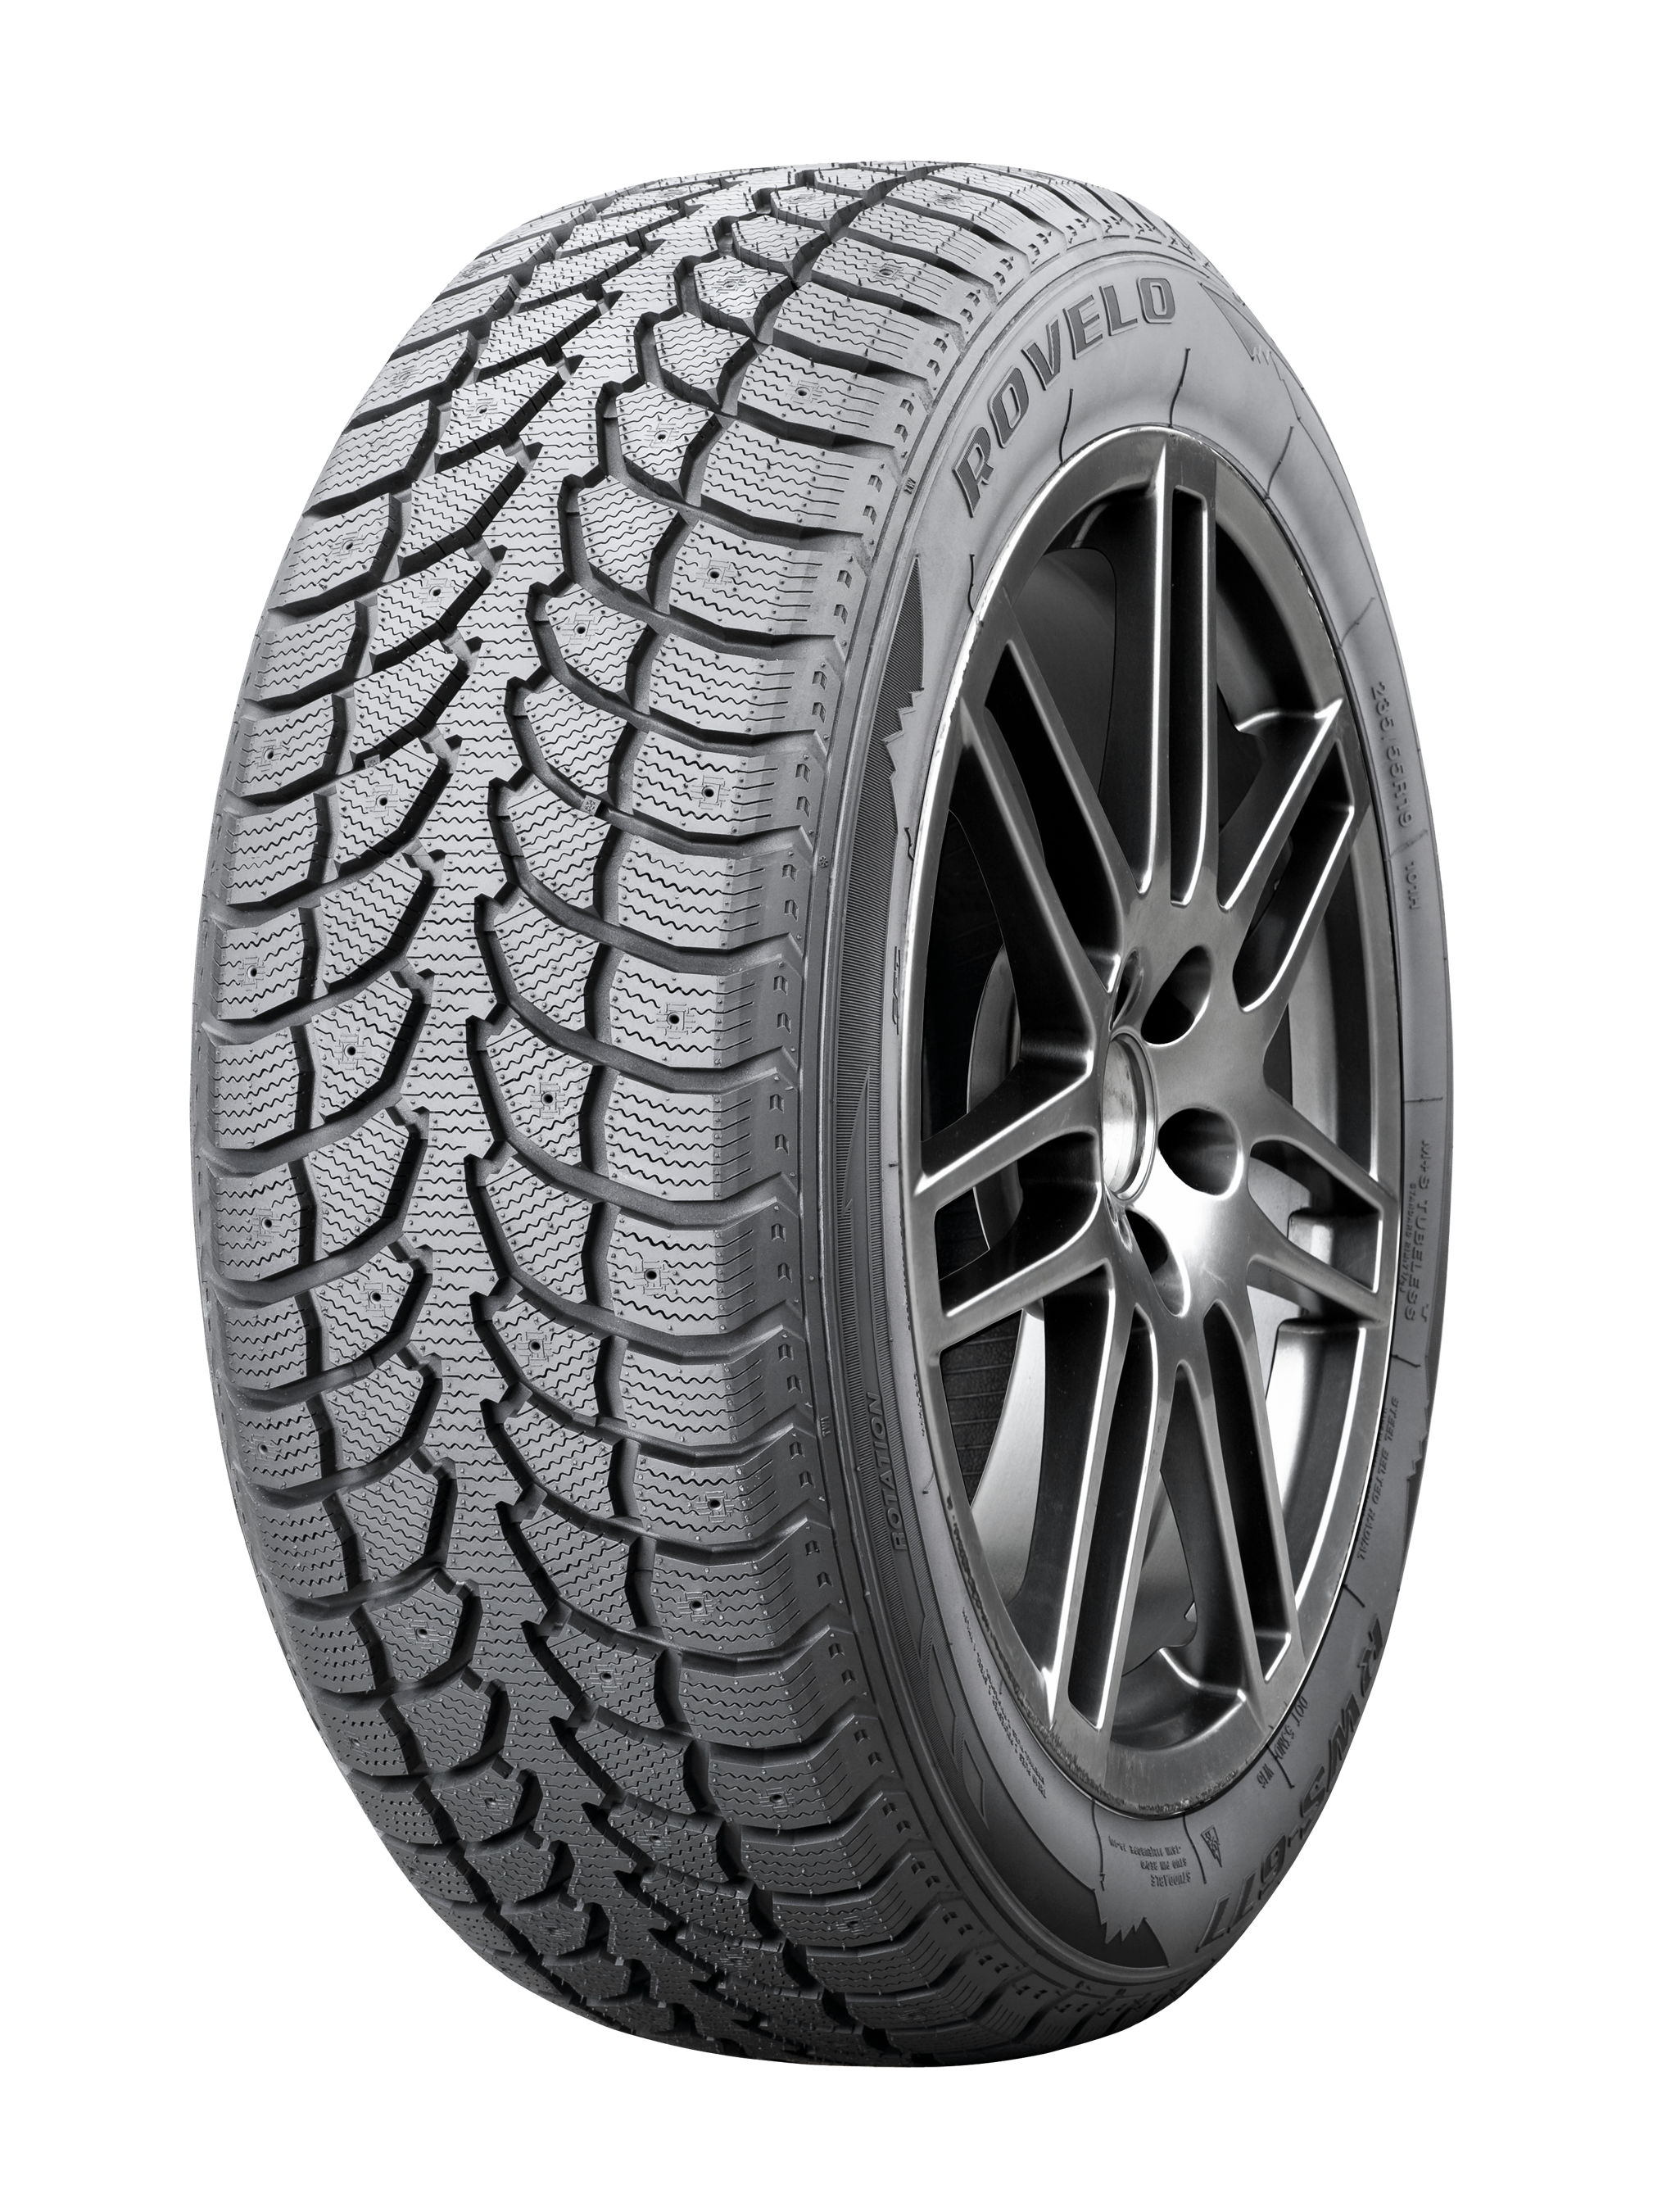 185 60R14 Tires >> ROVELO RWS-677 STUDDABLE WINTER TIRE